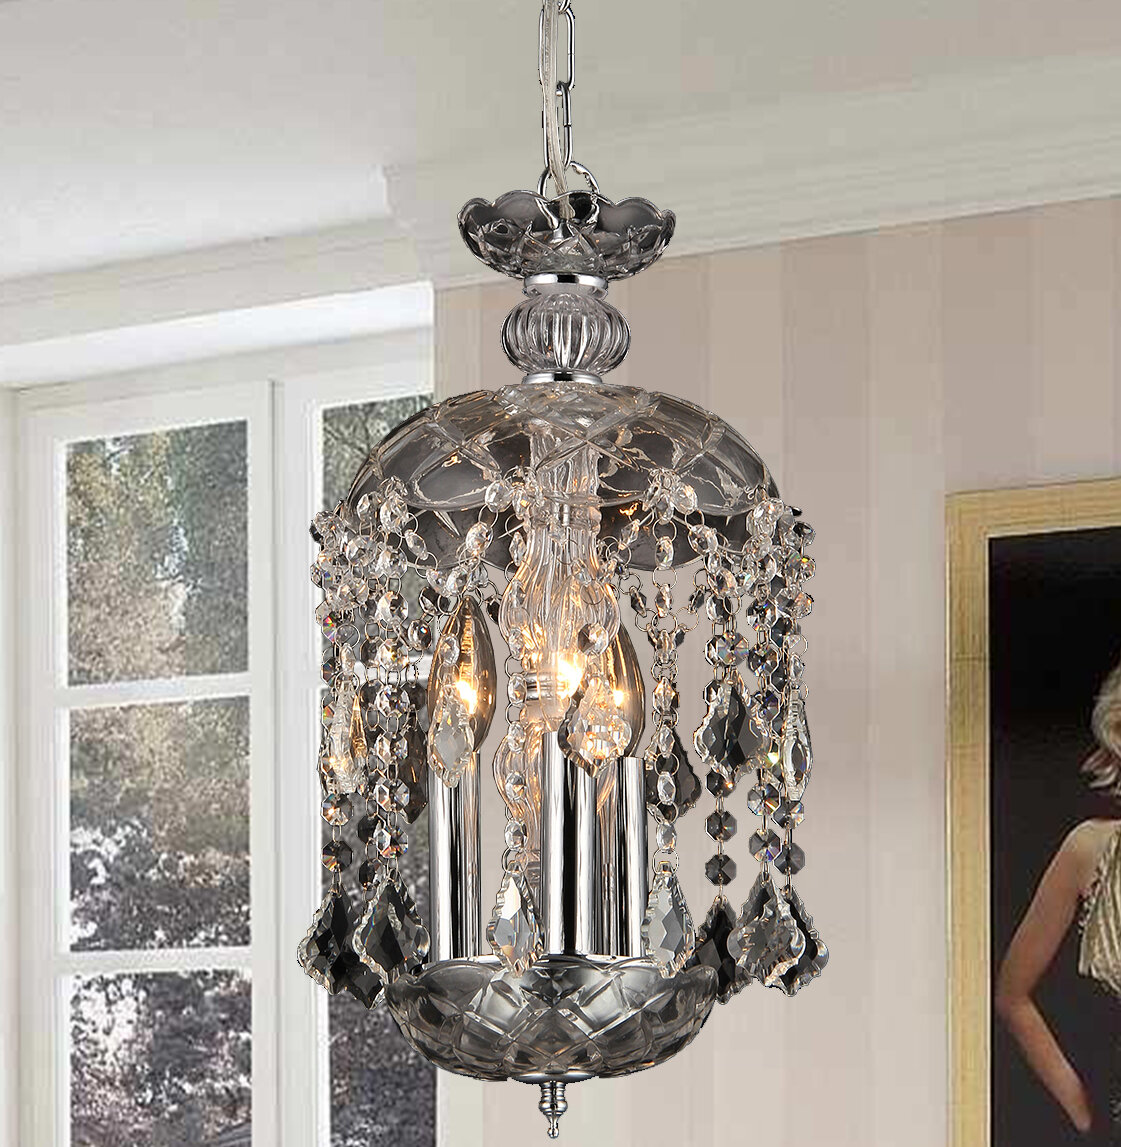 shades lights bronze chandelier fx hanging mica and forged crystal lighting w iron fixture pendant metal wood with